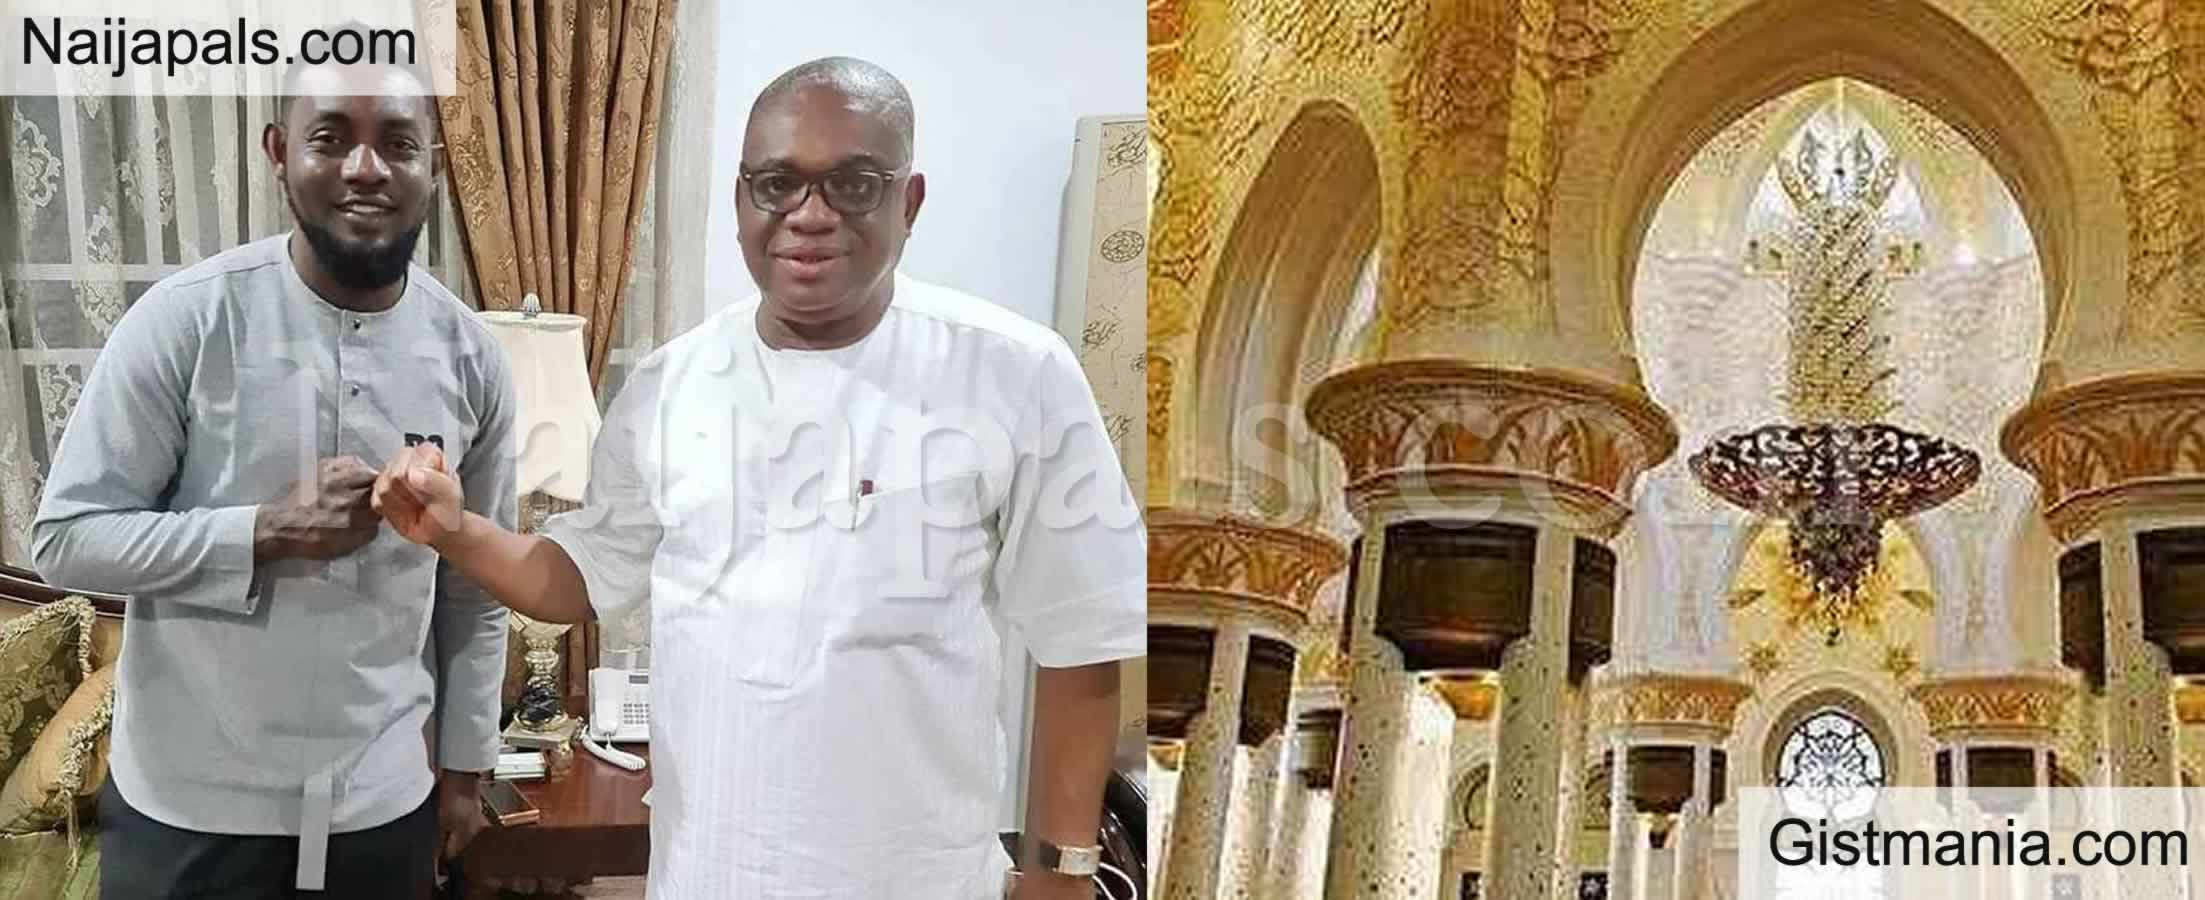 <img alt='.' class='lazyload' data-src='https://img.gistmania.com/emot/thumbs_up.gif' /> <b>Orji Uzor Kalu & AY Makun Set to Be Build The First Ever Film Studio in Nigeria 'Camp Neya'</b>